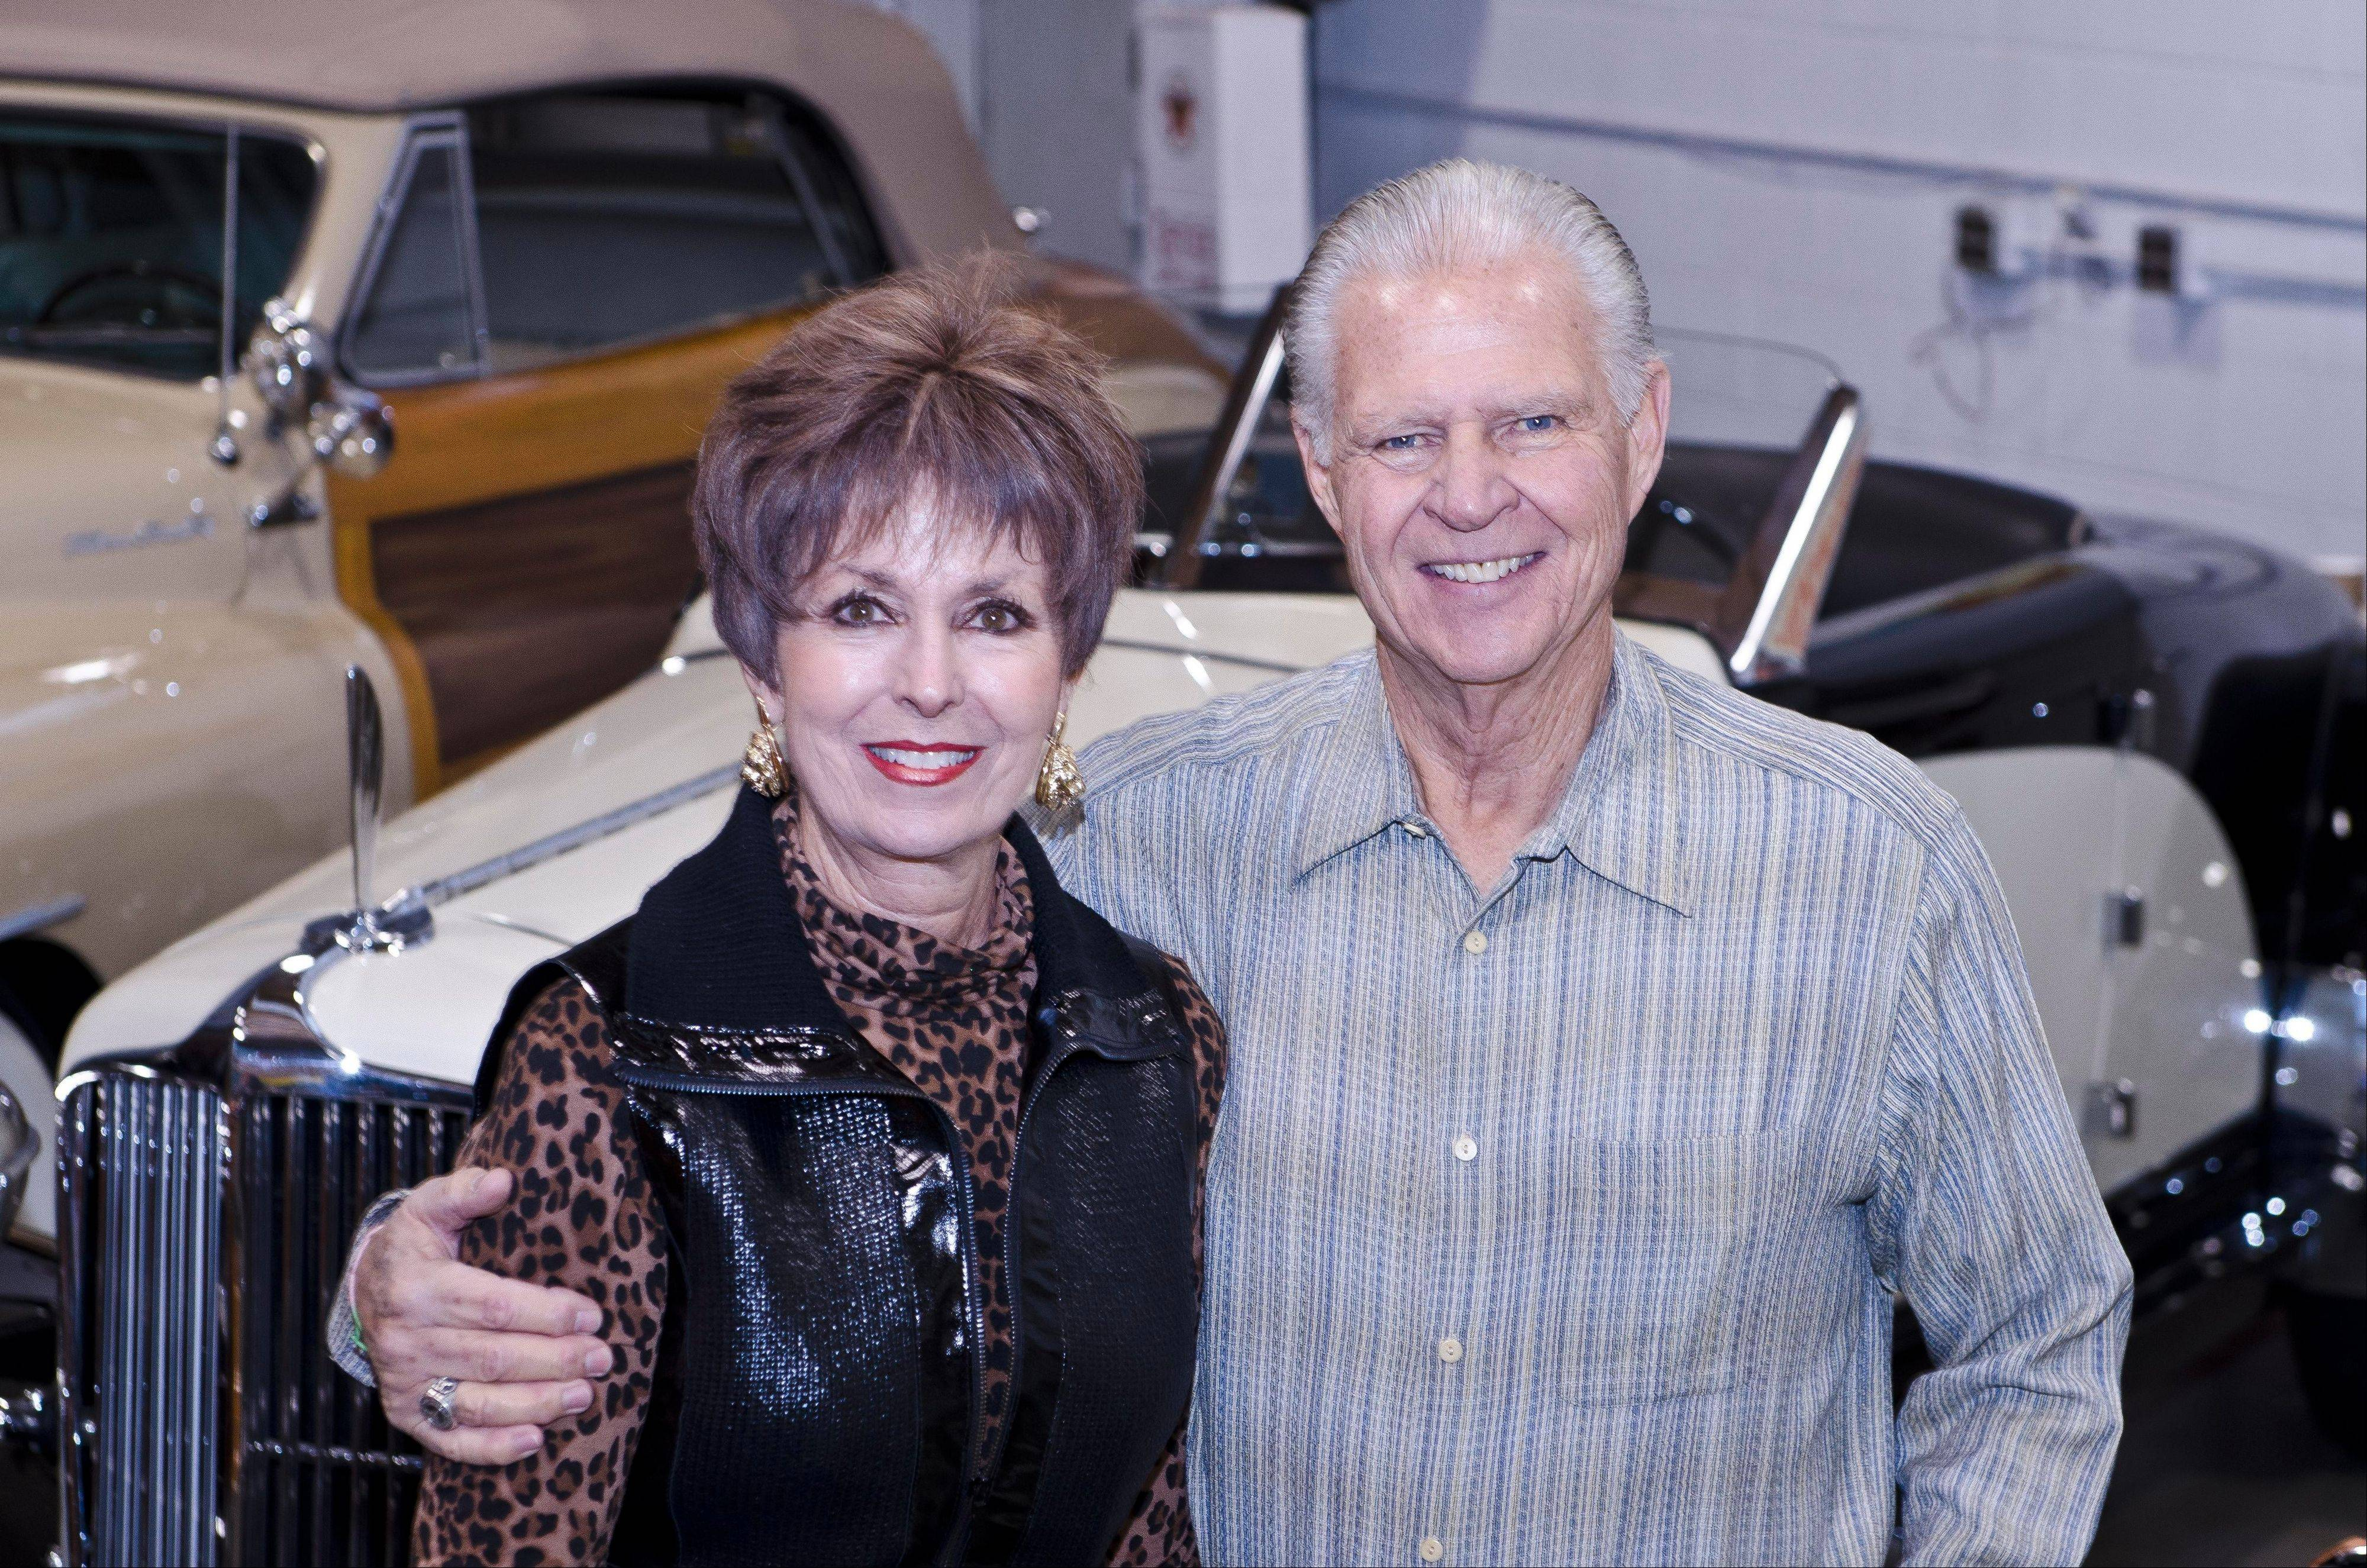 Ed and Judy Schoenthaler, Car Collection, Oak Brook Eclectic collection that includes the best from the likes of Auburn, Packard, Rolls-Royce, Bentley and Delahaye